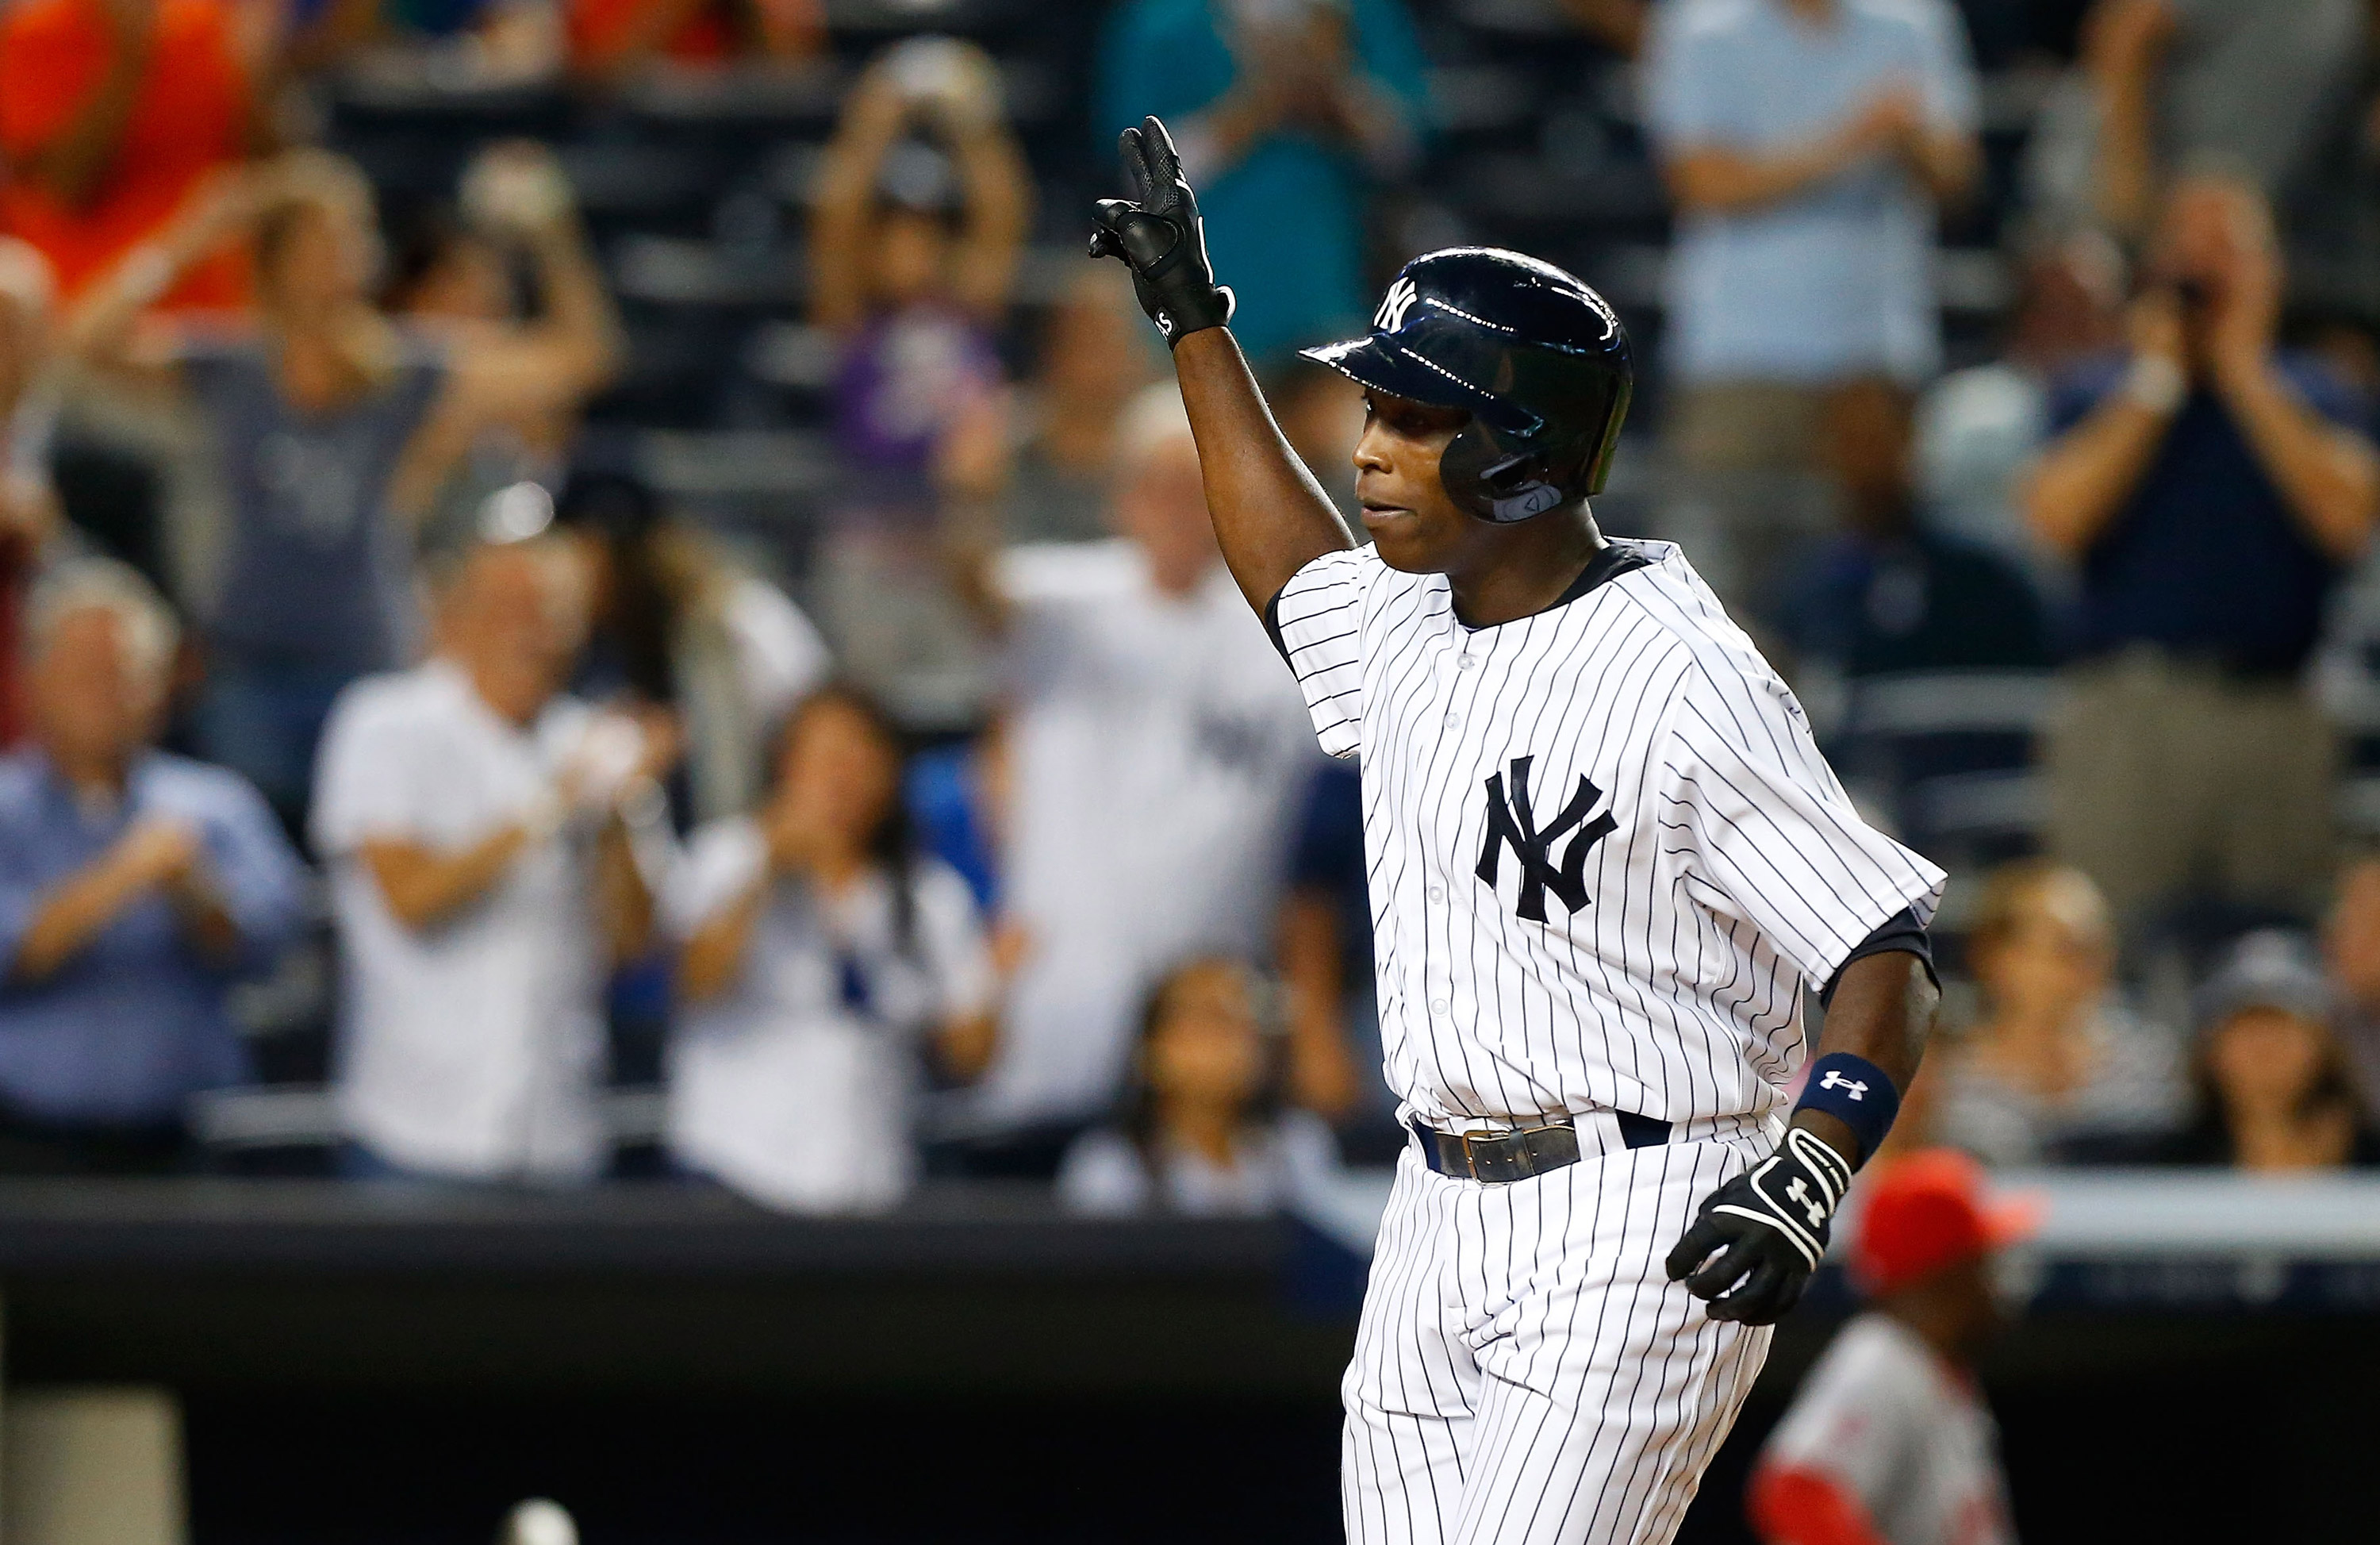 Alfonso Soriano Pictures - Picsearch